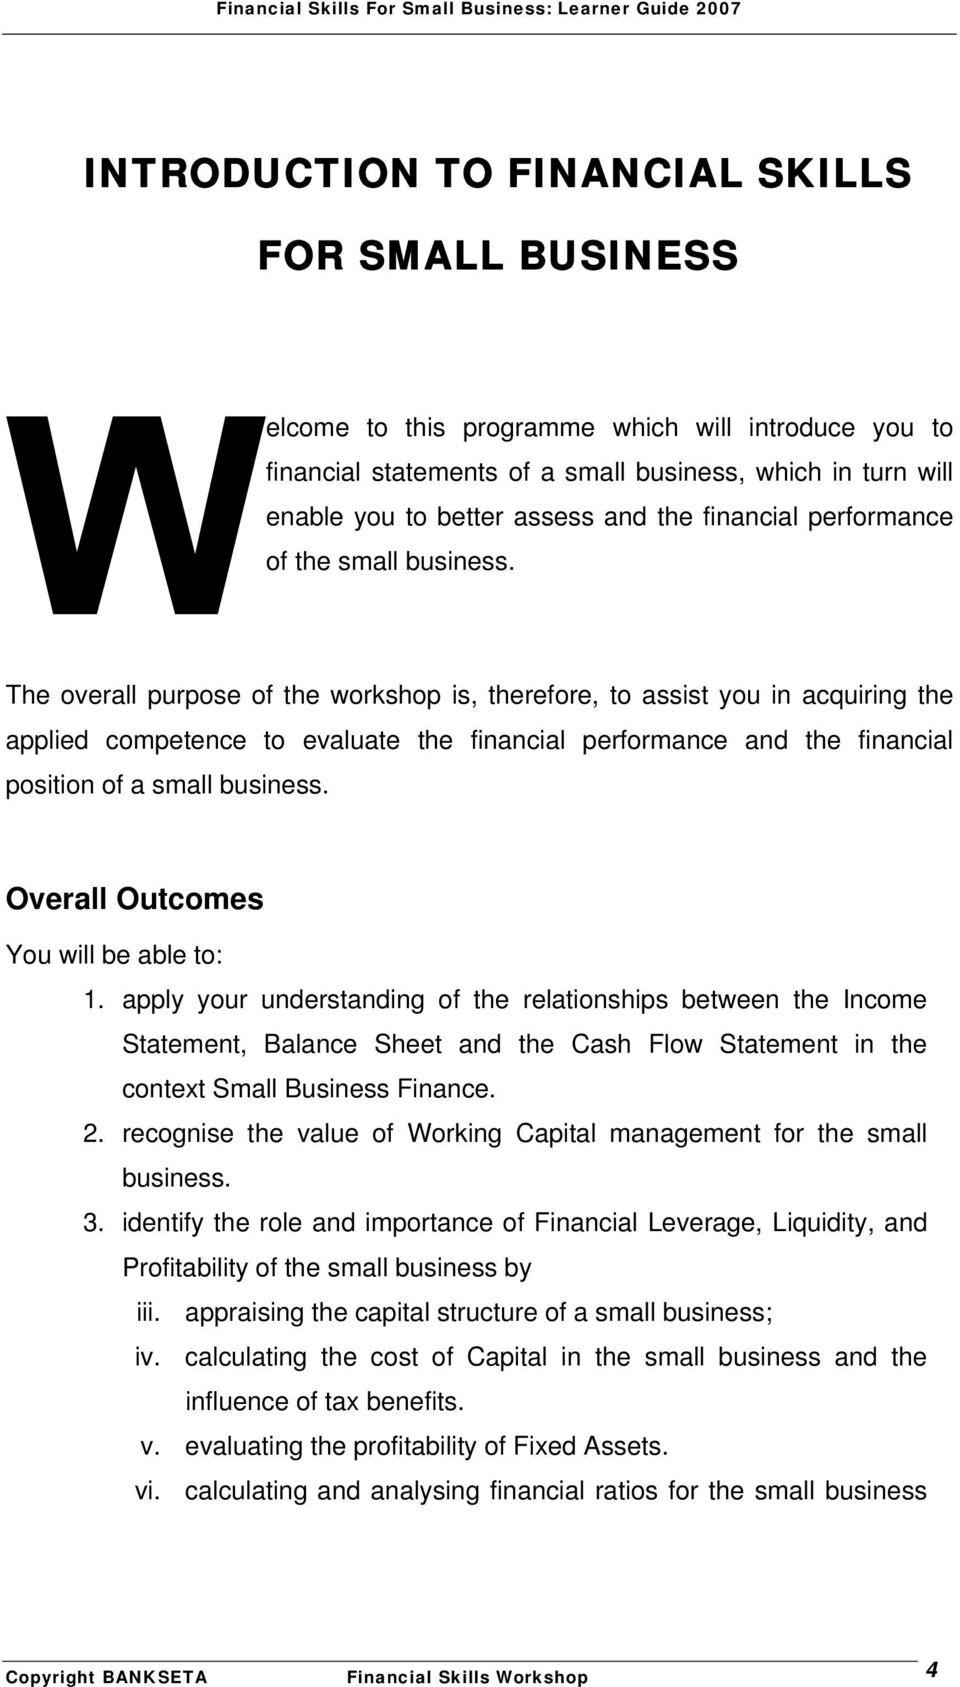 The overall purpose of the workshop is, therefore, to assist you in acquiring the applied competence to evaluate the financial performance and the financial position of a small business.